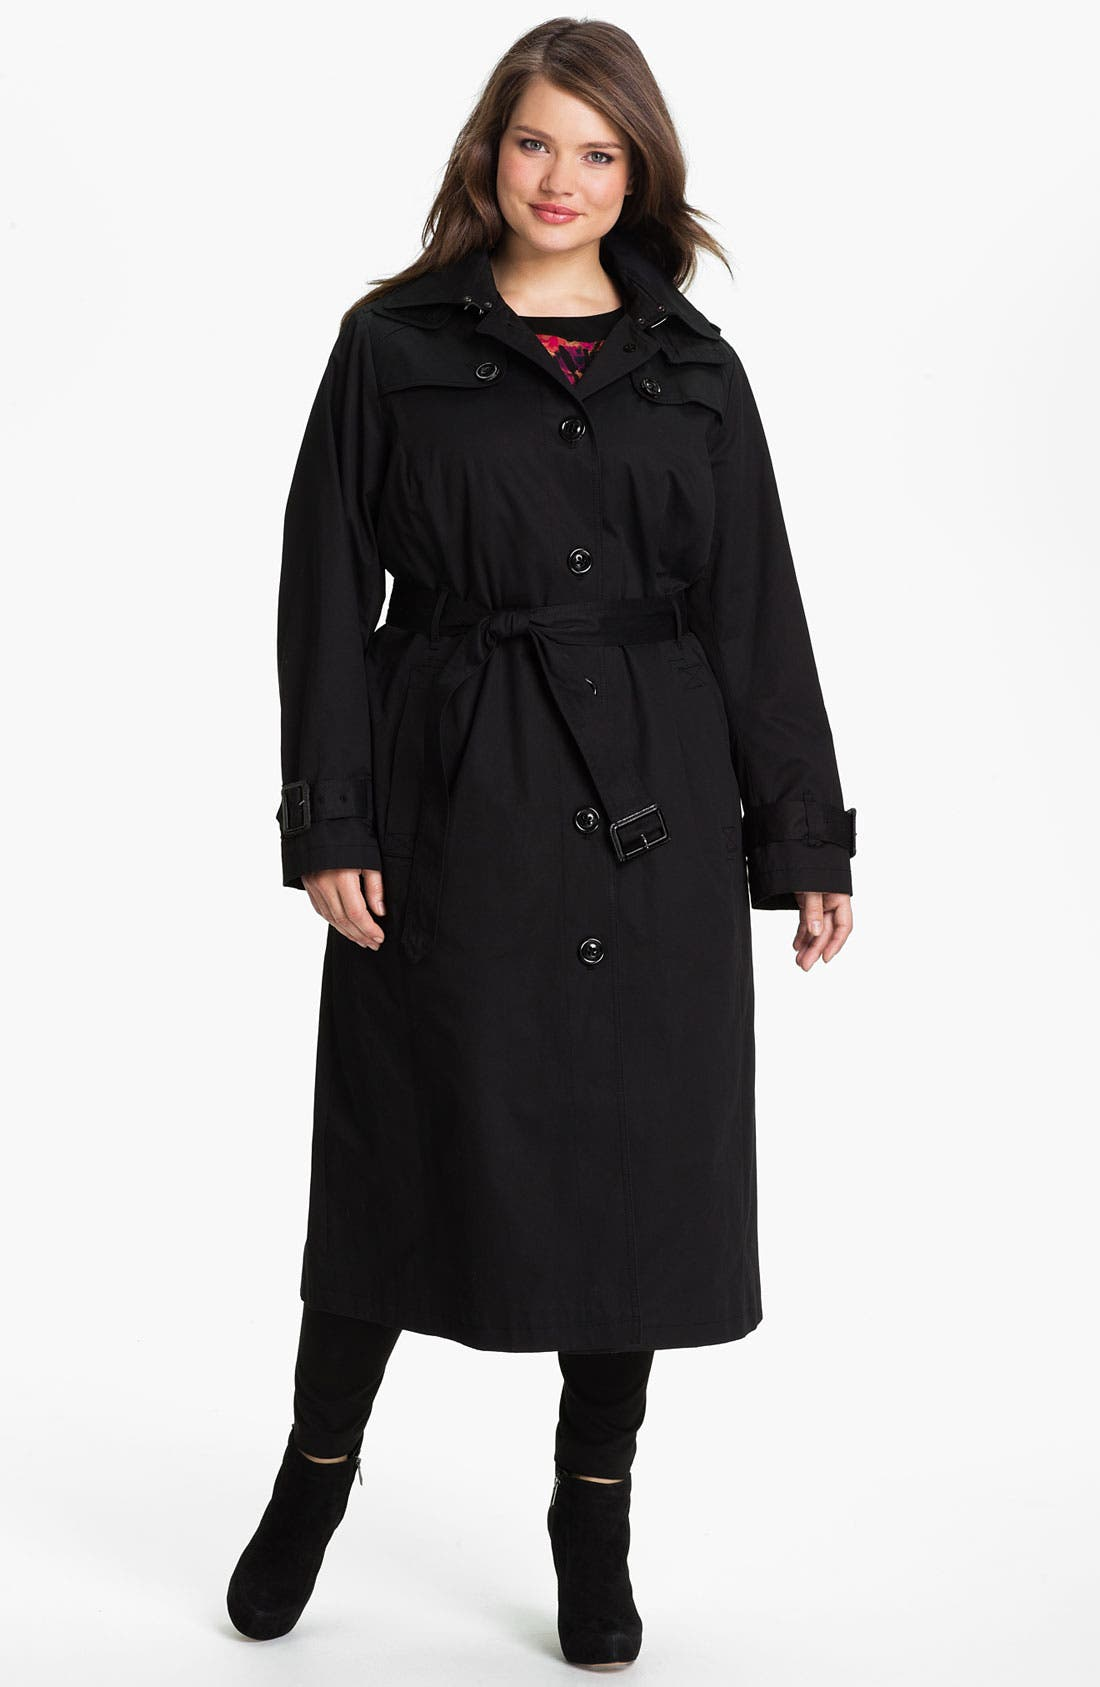 Main Image - London Fog Long Trench Raincoat with Liner (Plus Size) (Online Only)